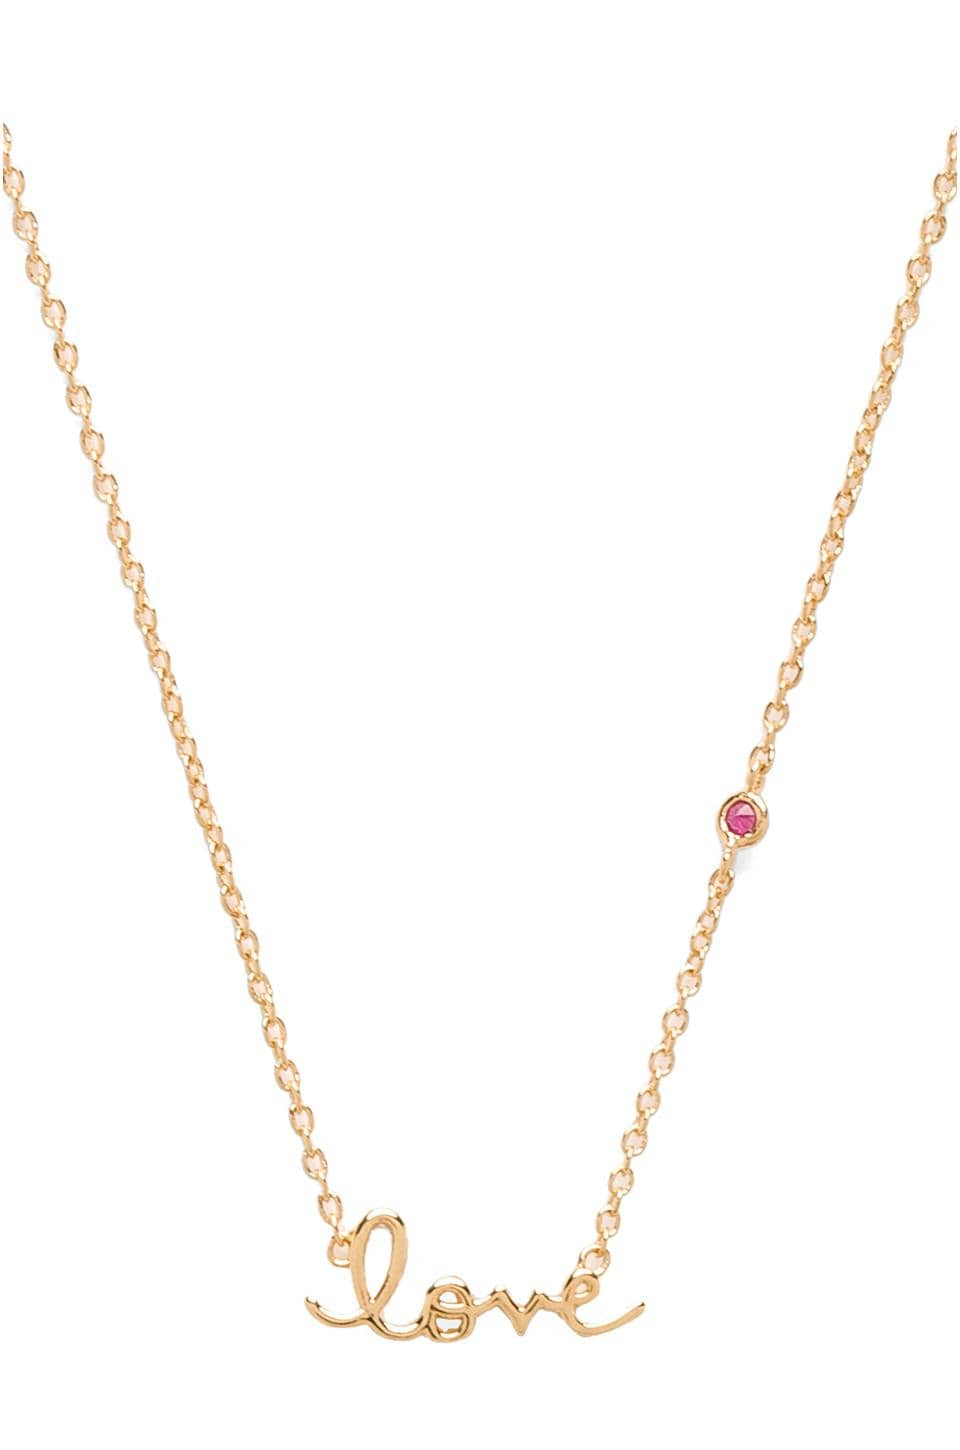 Shy by Sydney Evan Love Necklace with Ruby Stone in Gold